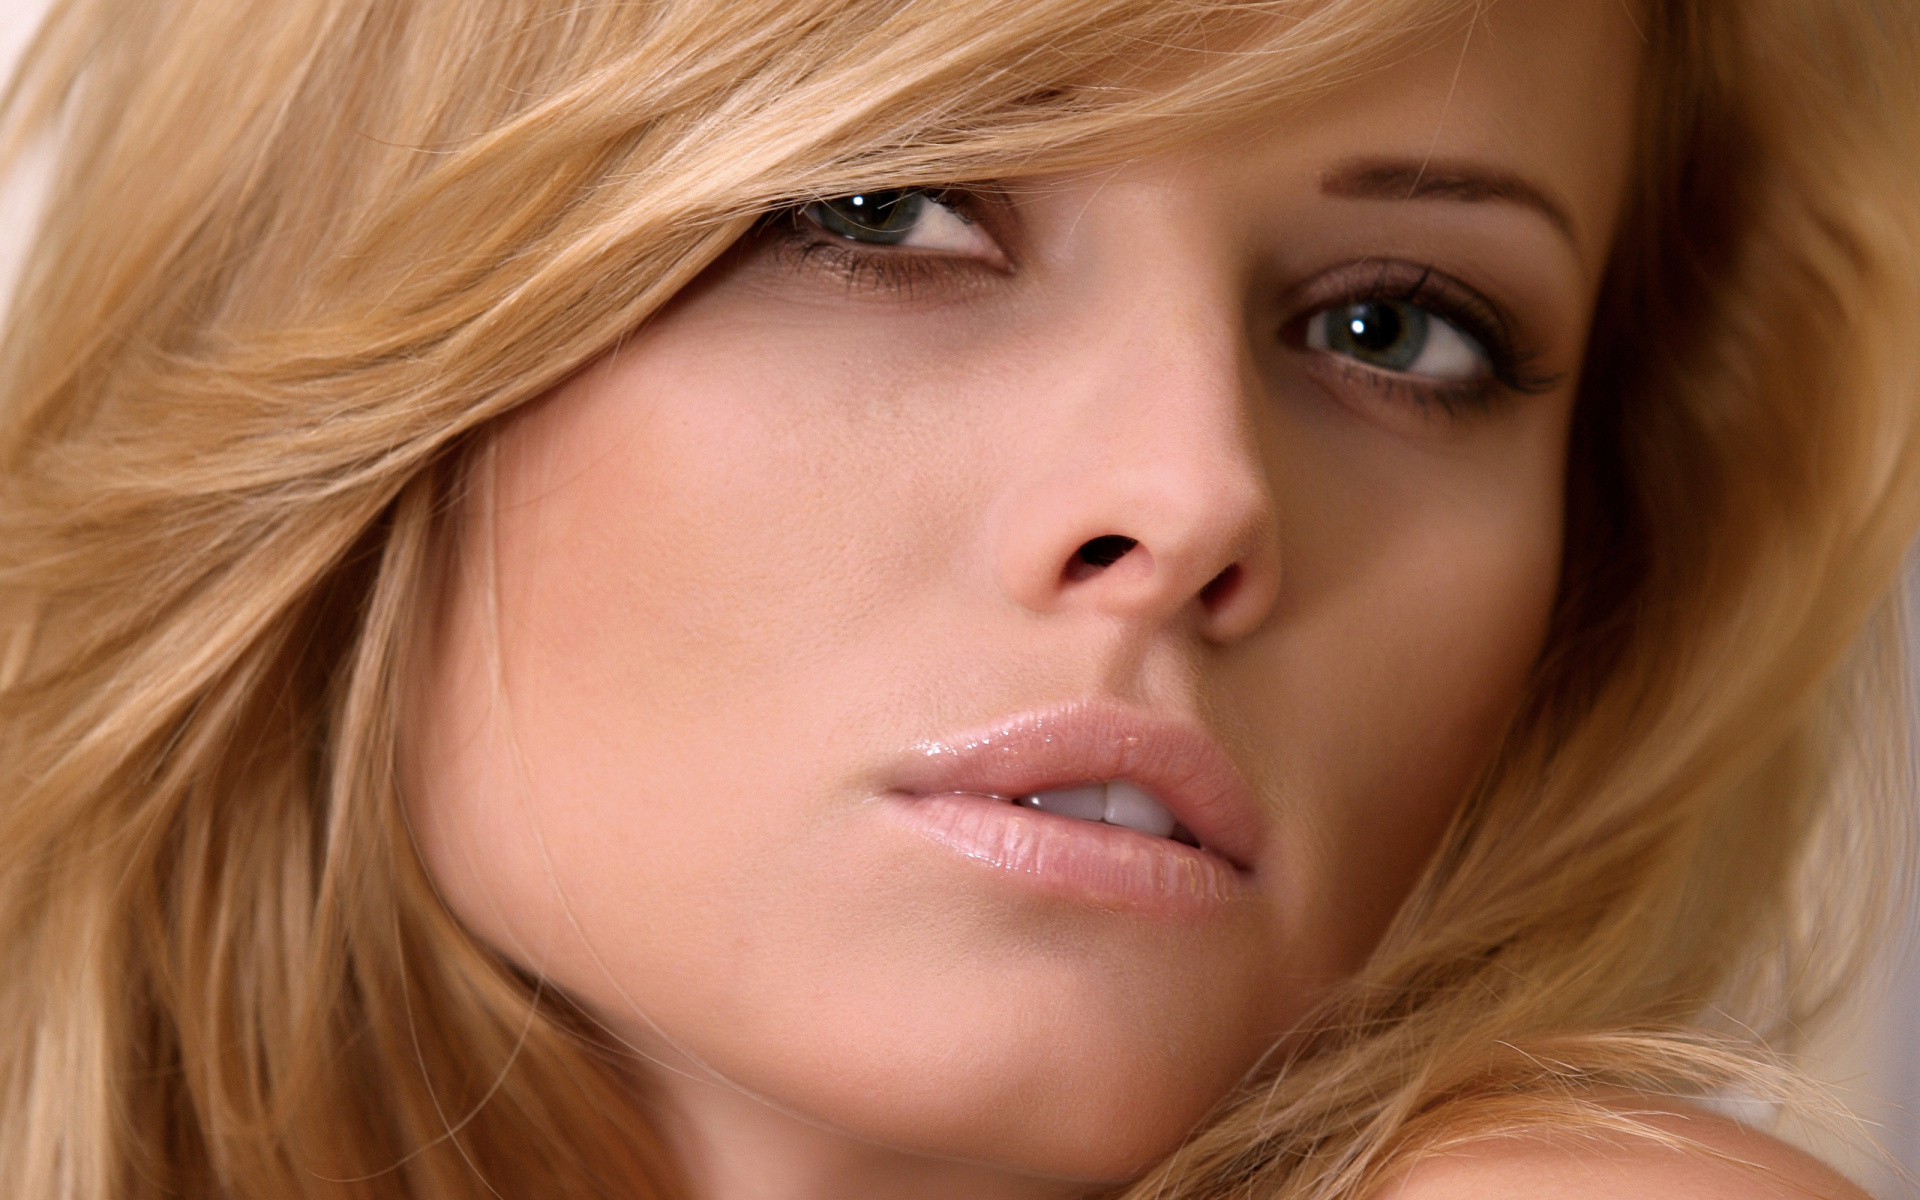 Girl Close Up Wallpapers